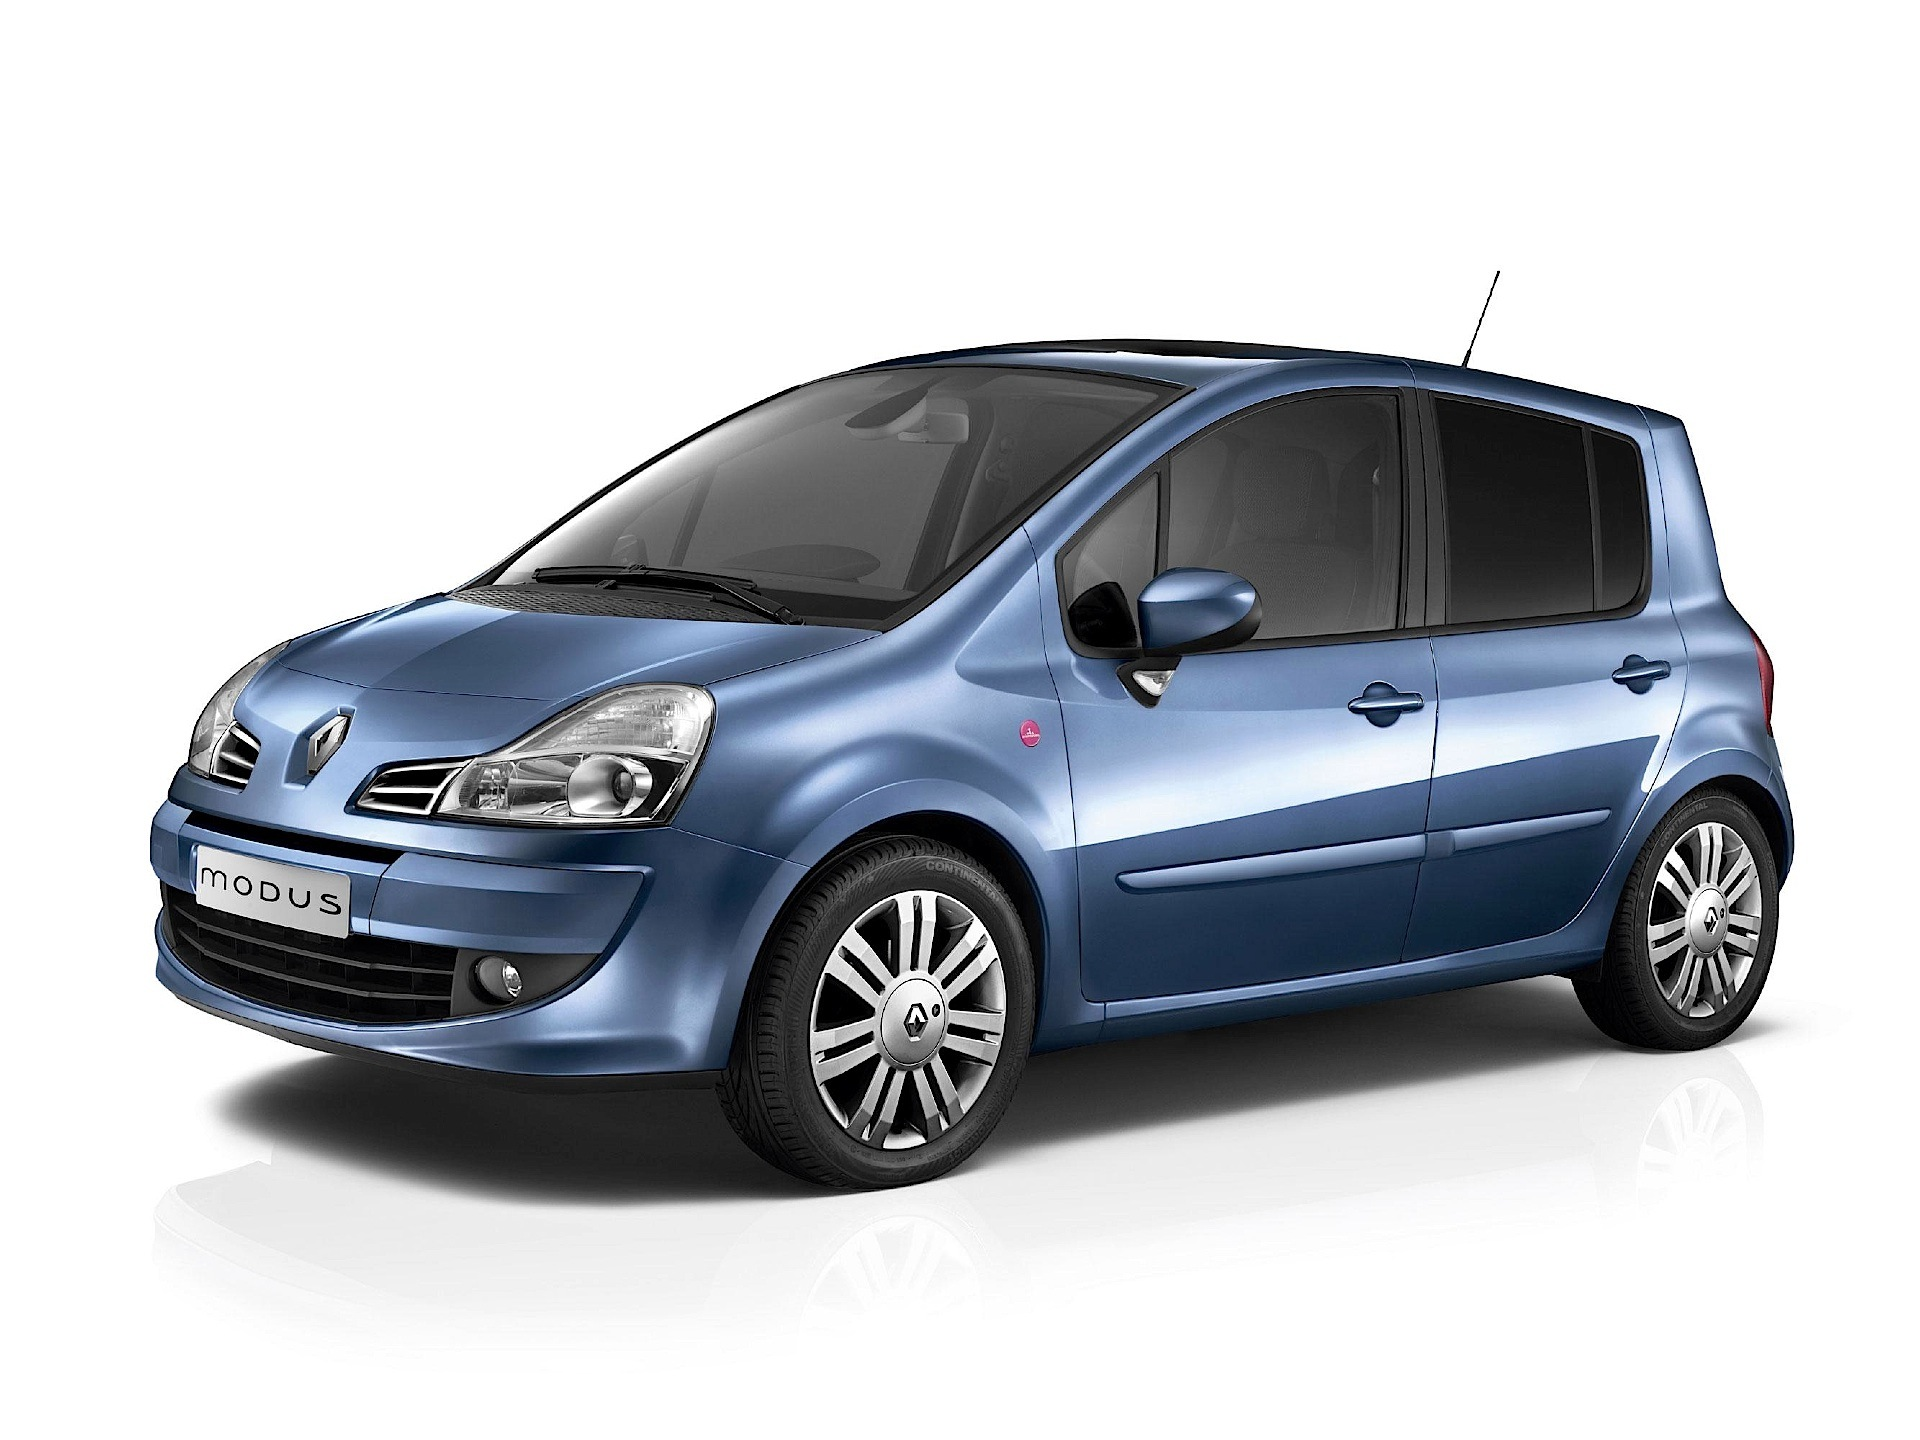 2010 renault modus pictures information and specs auto. Black Bedroom Furniture Sets. Home Design Ideas